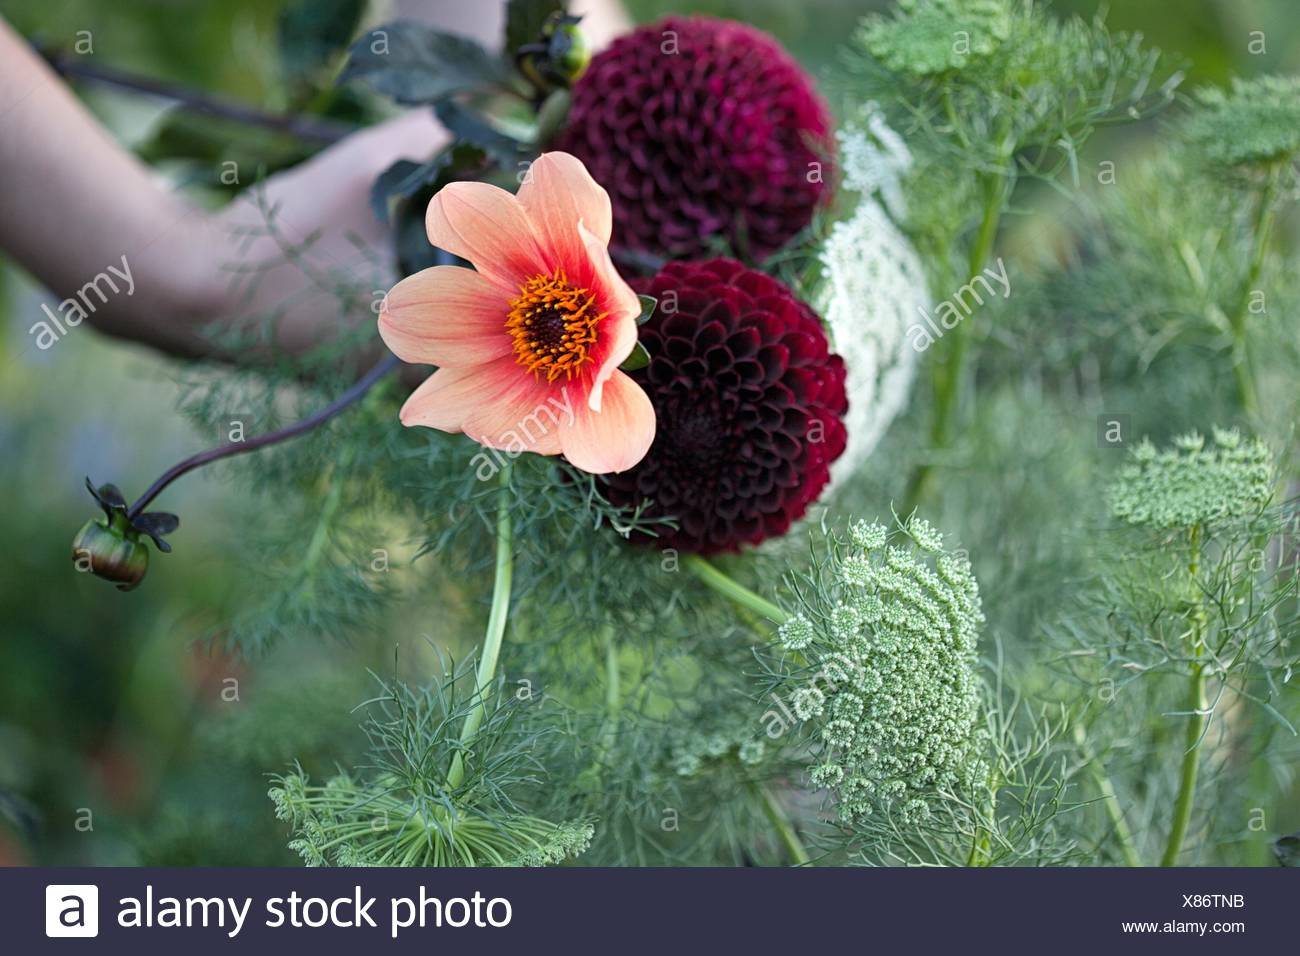 Womans hand holding fresh flowers and ferns at allotment - Stock Image